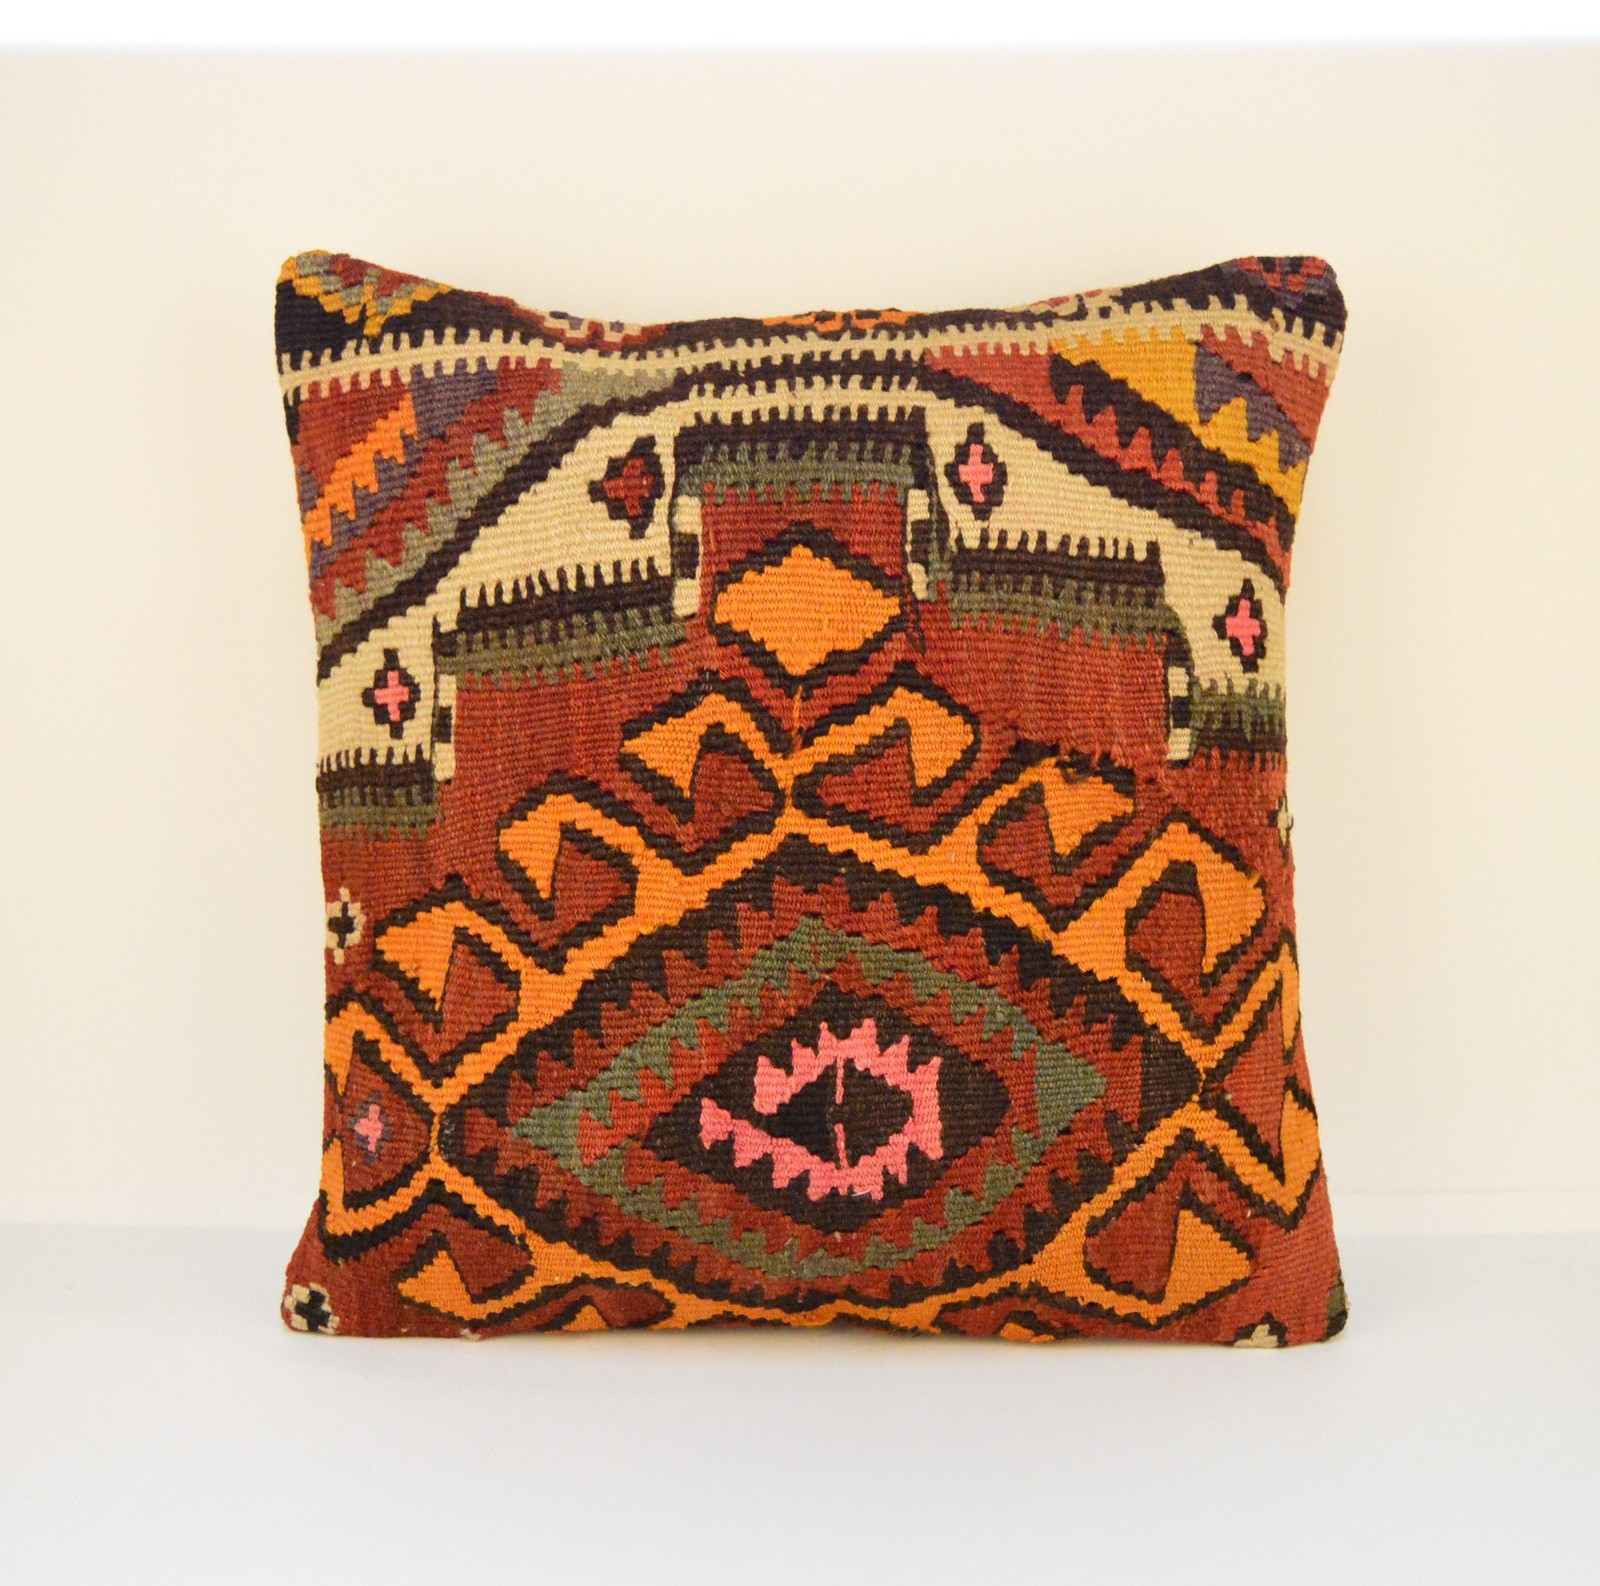 Decorative Throw Pillows Sets : bohemian decor,throw pillow,decorative throw pillows,kilim pillows, home decor, - Pillows